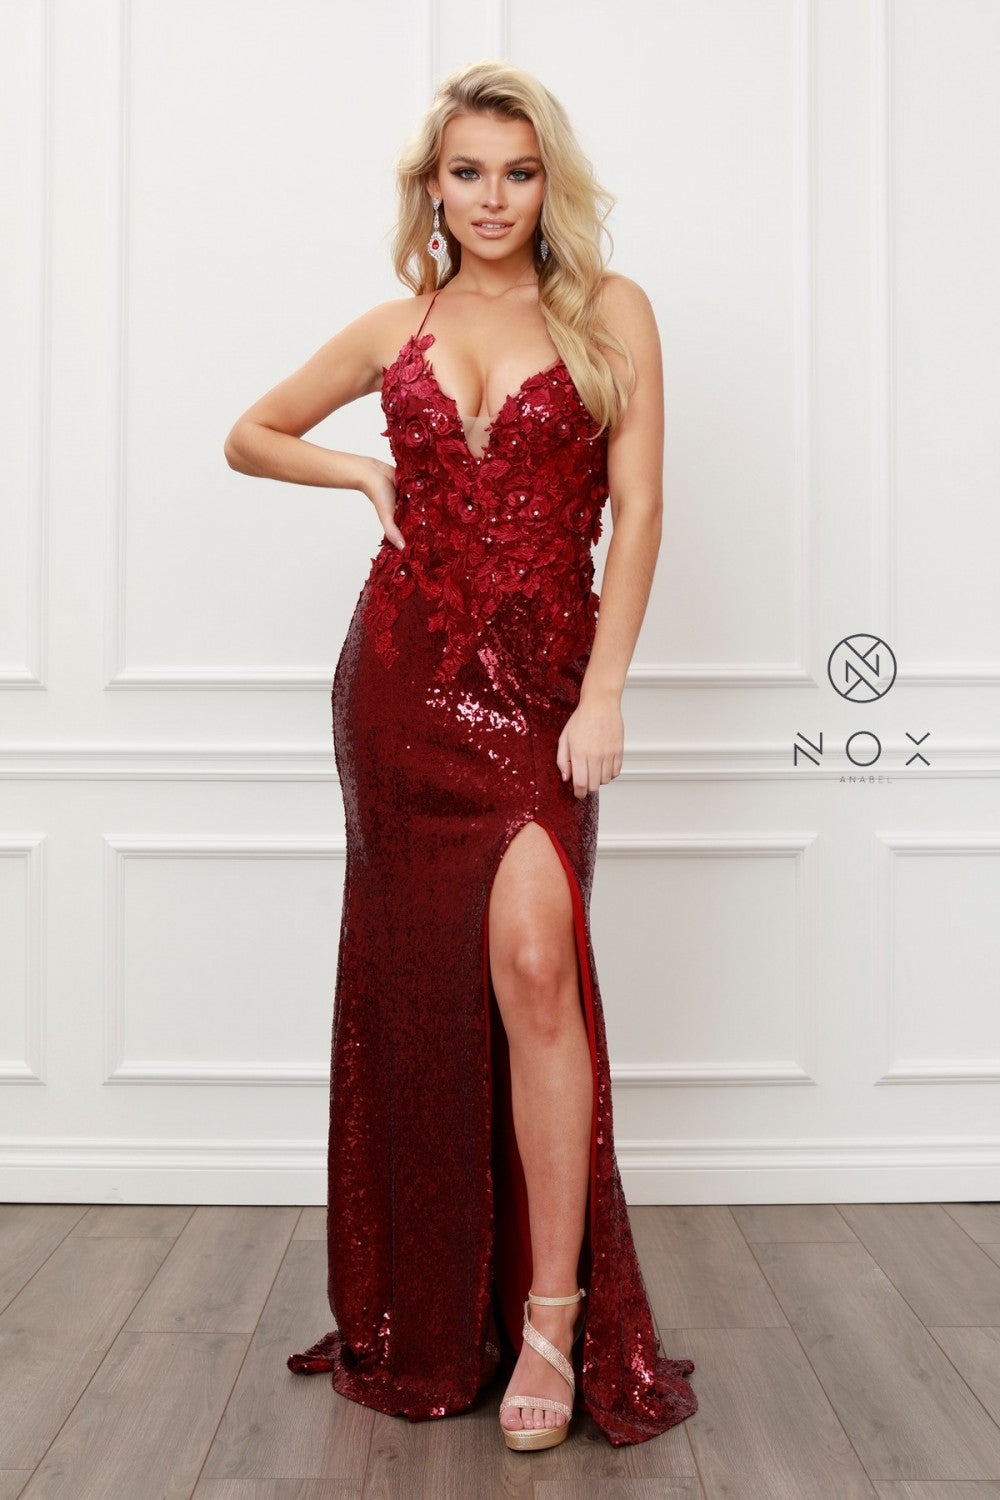 N R429 - 3D Floral & Bead Embellished Sequin Fit & Flare Prom Gown with V-Neck Open Lace Up Corset Back & Leg Slit - Diggz Prom